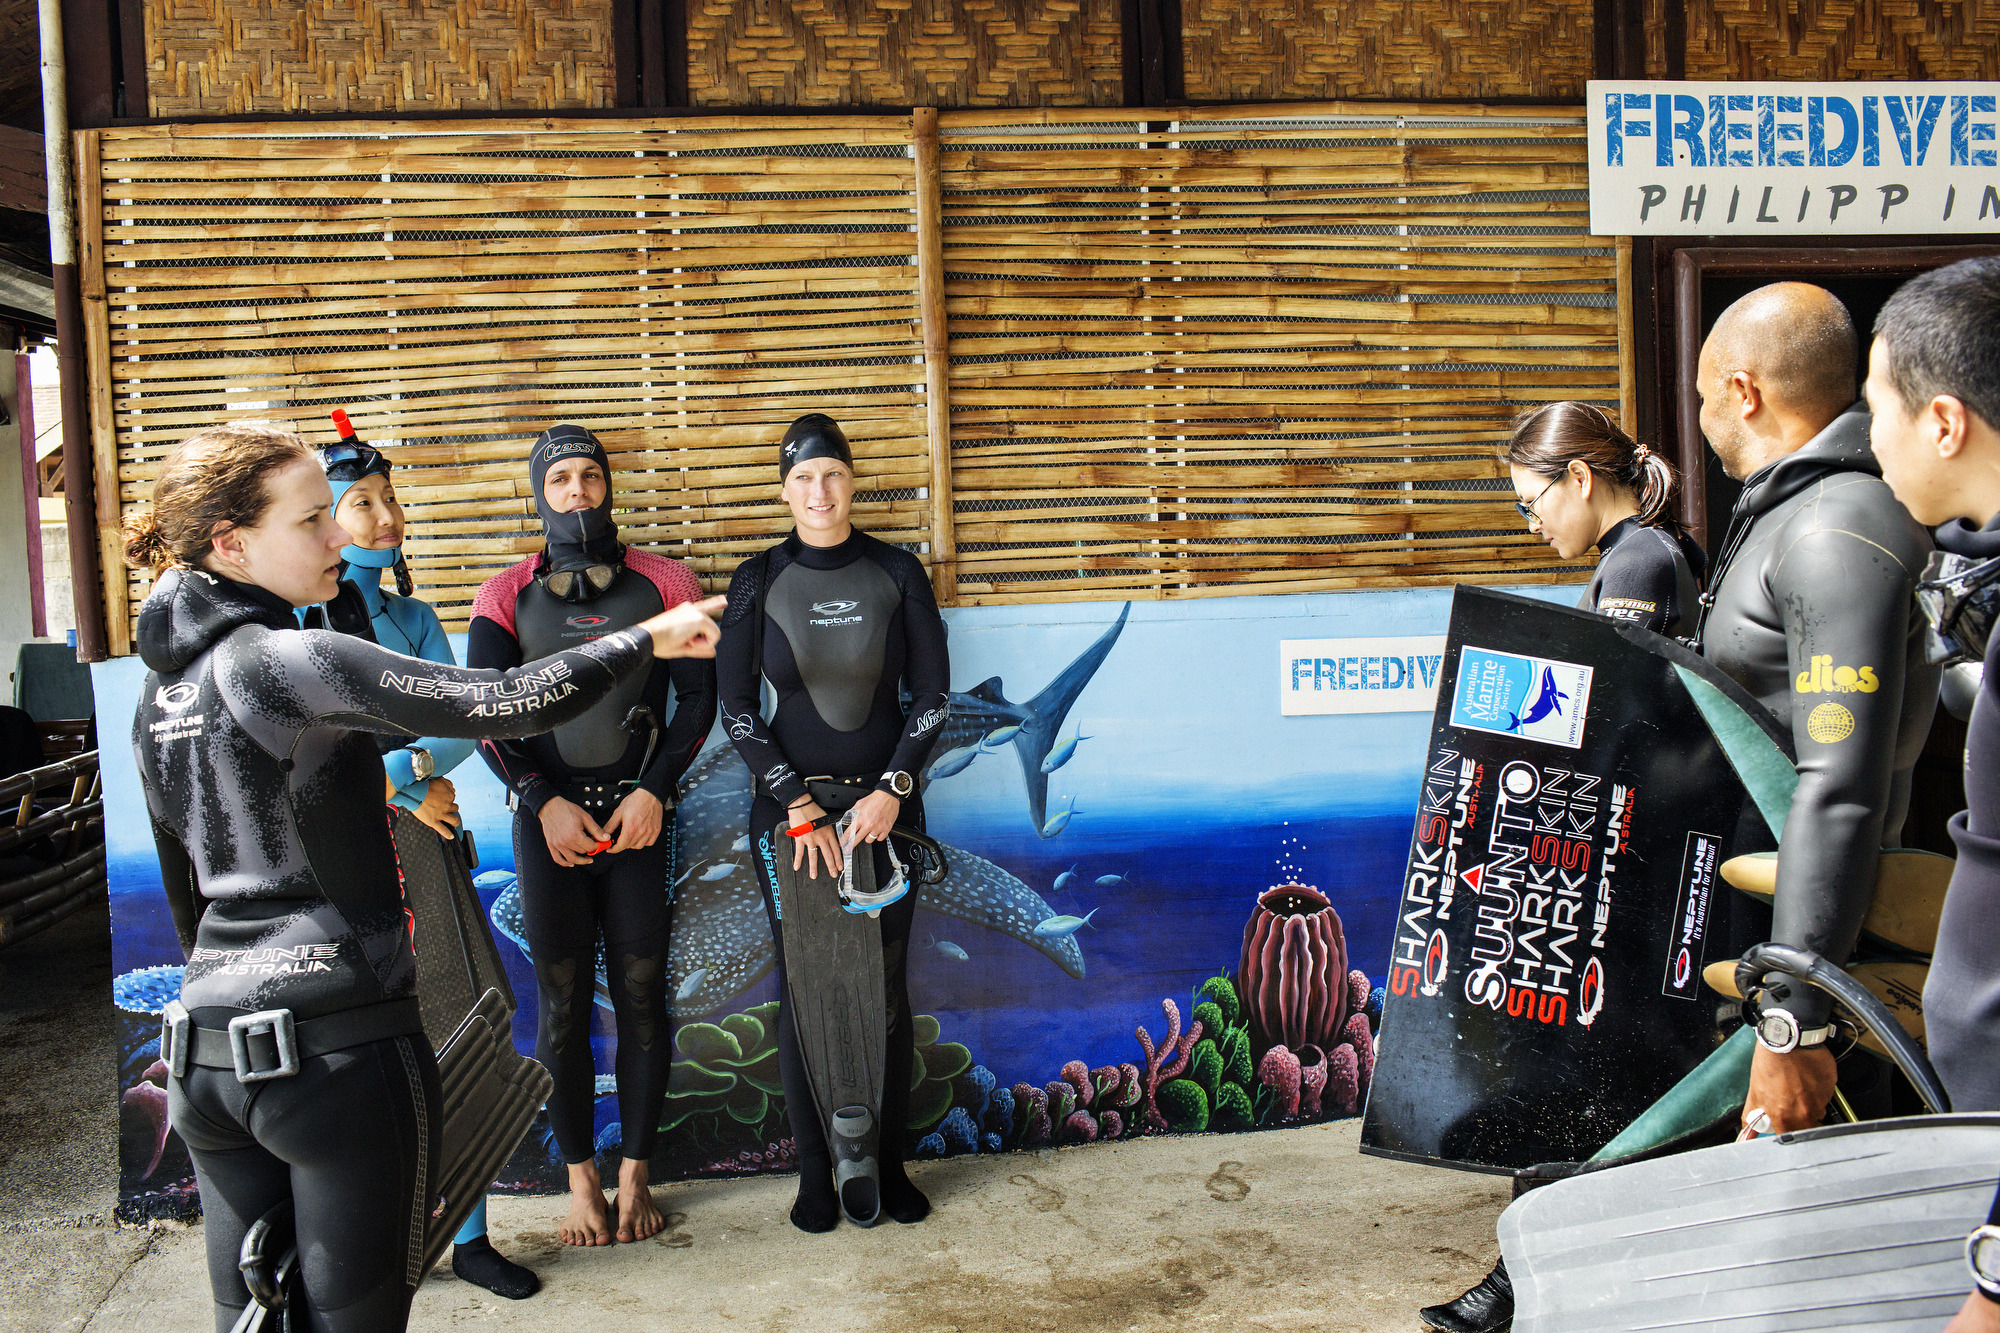 DH_CEBU_FREEDIVING_2014_A0665FIN_2000PIX.jpg